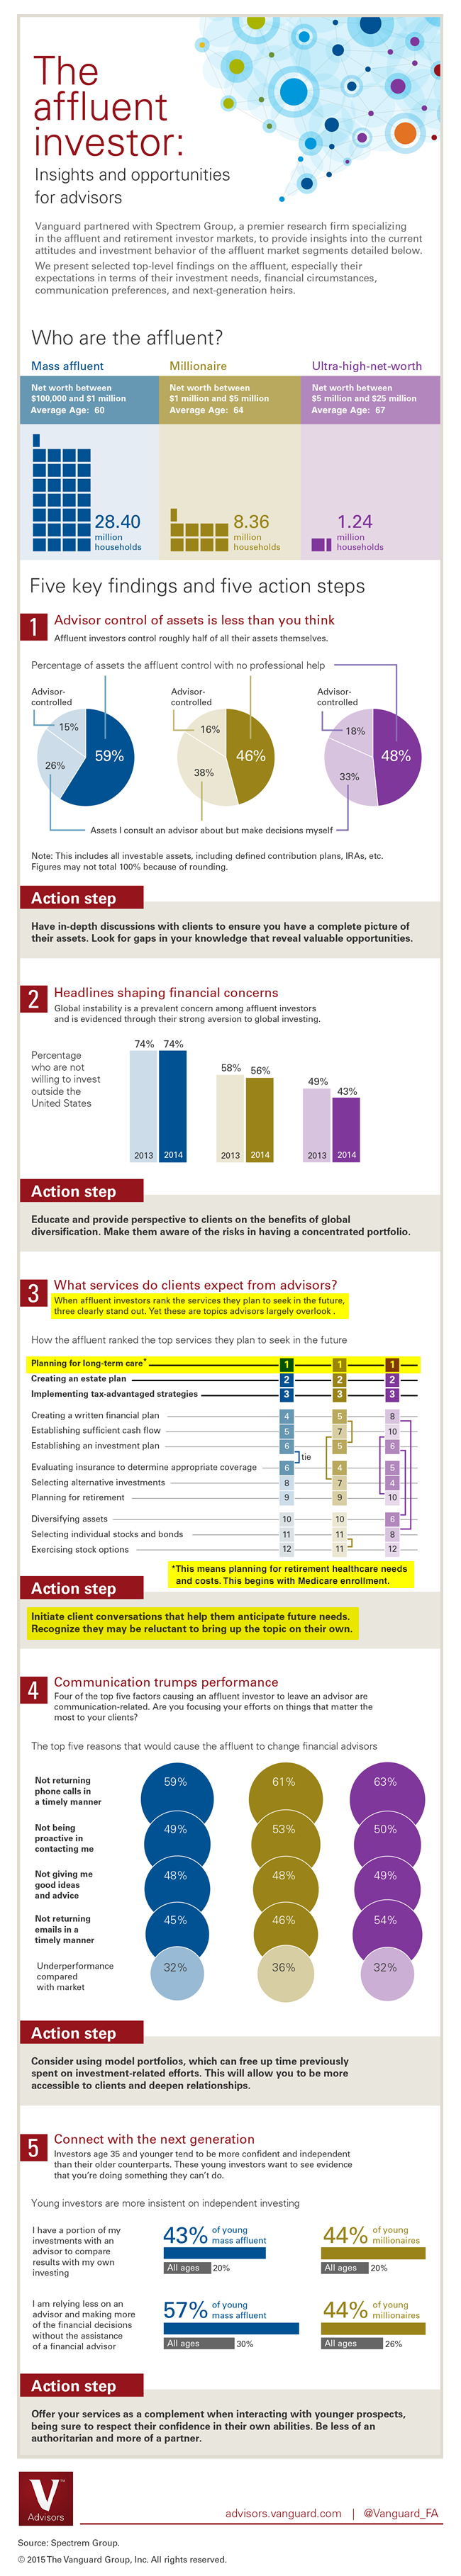 Vanguard Study: Give Medicare Guidance to Clients